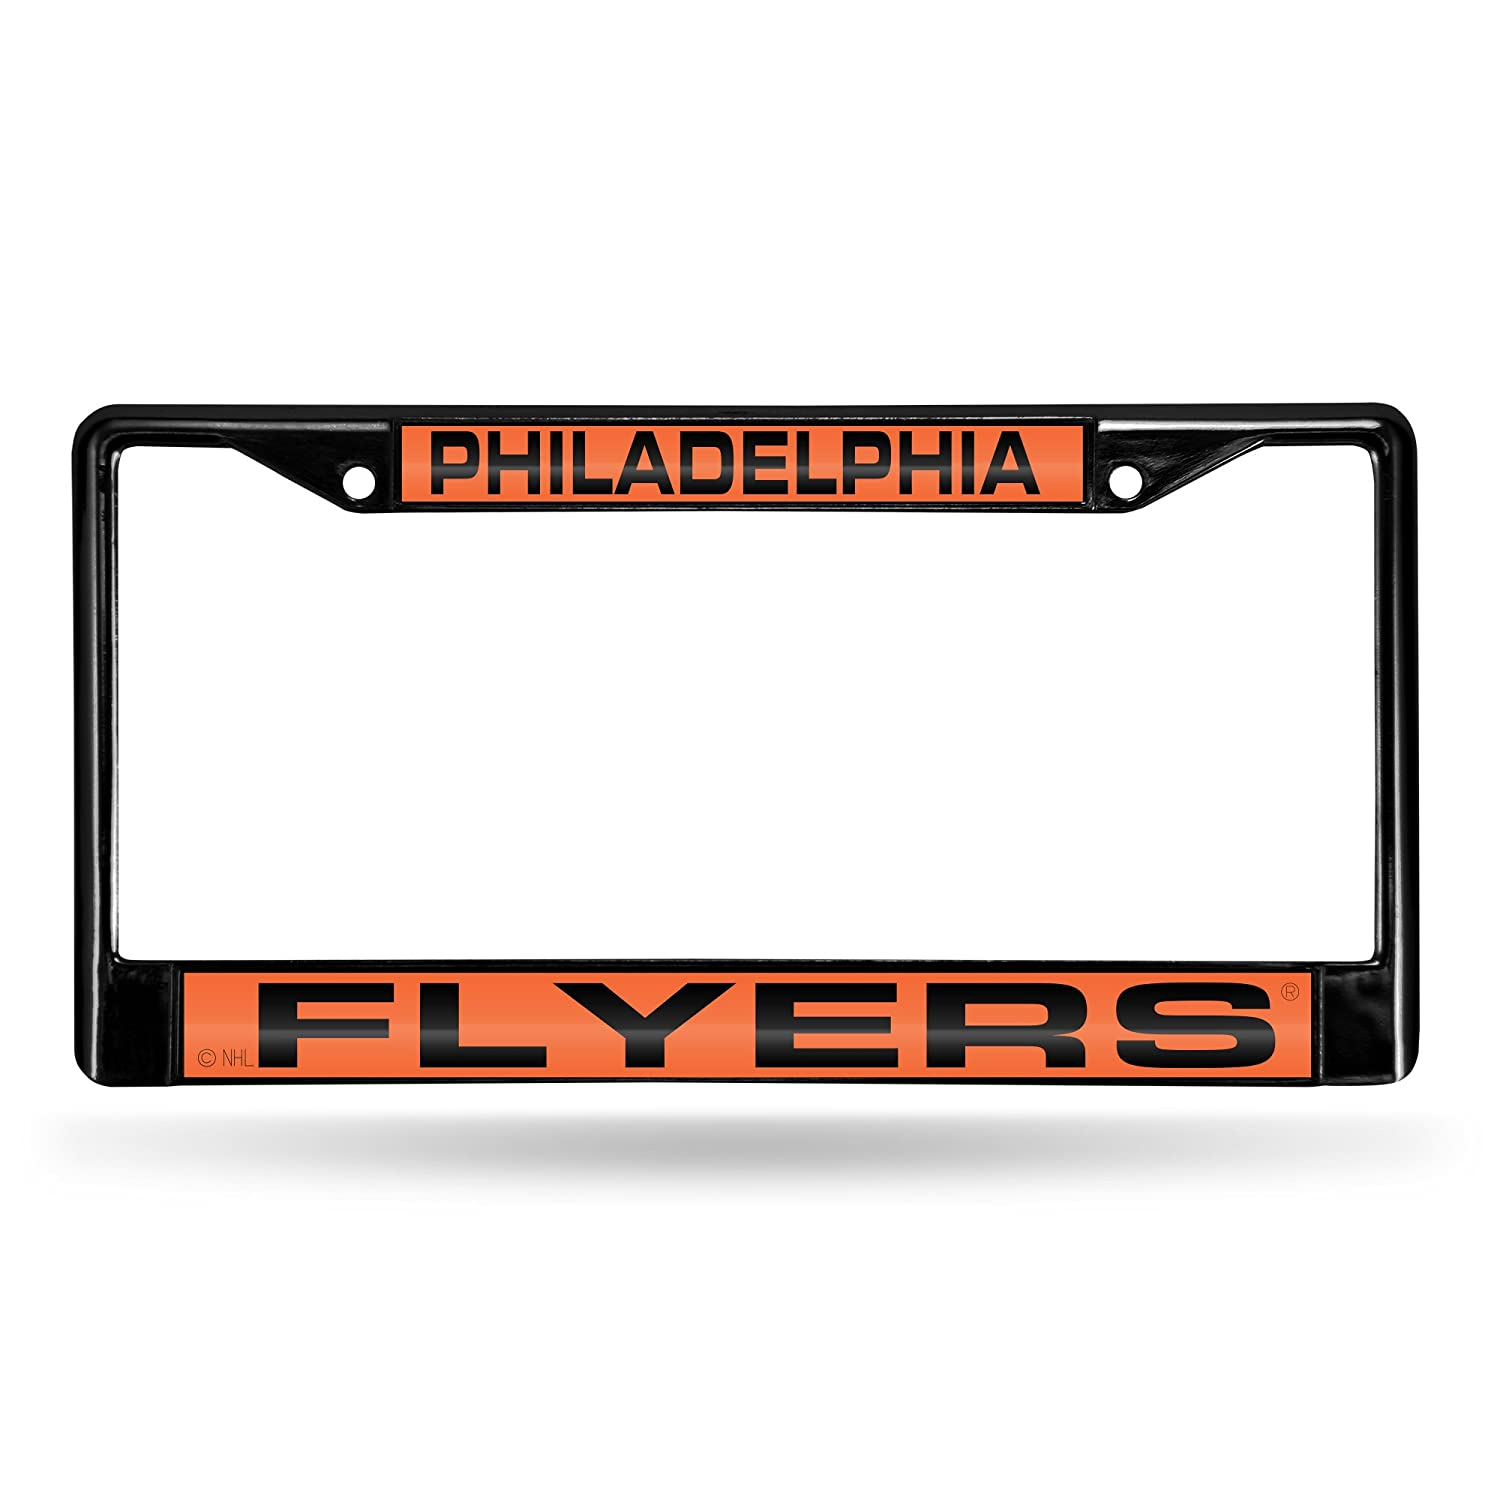 PHILADELPHIA FLYERS NHL LASER CUT BLACK LICENSE PLATE FRAME иглы новофайн 30g 0 3 8 мм n100